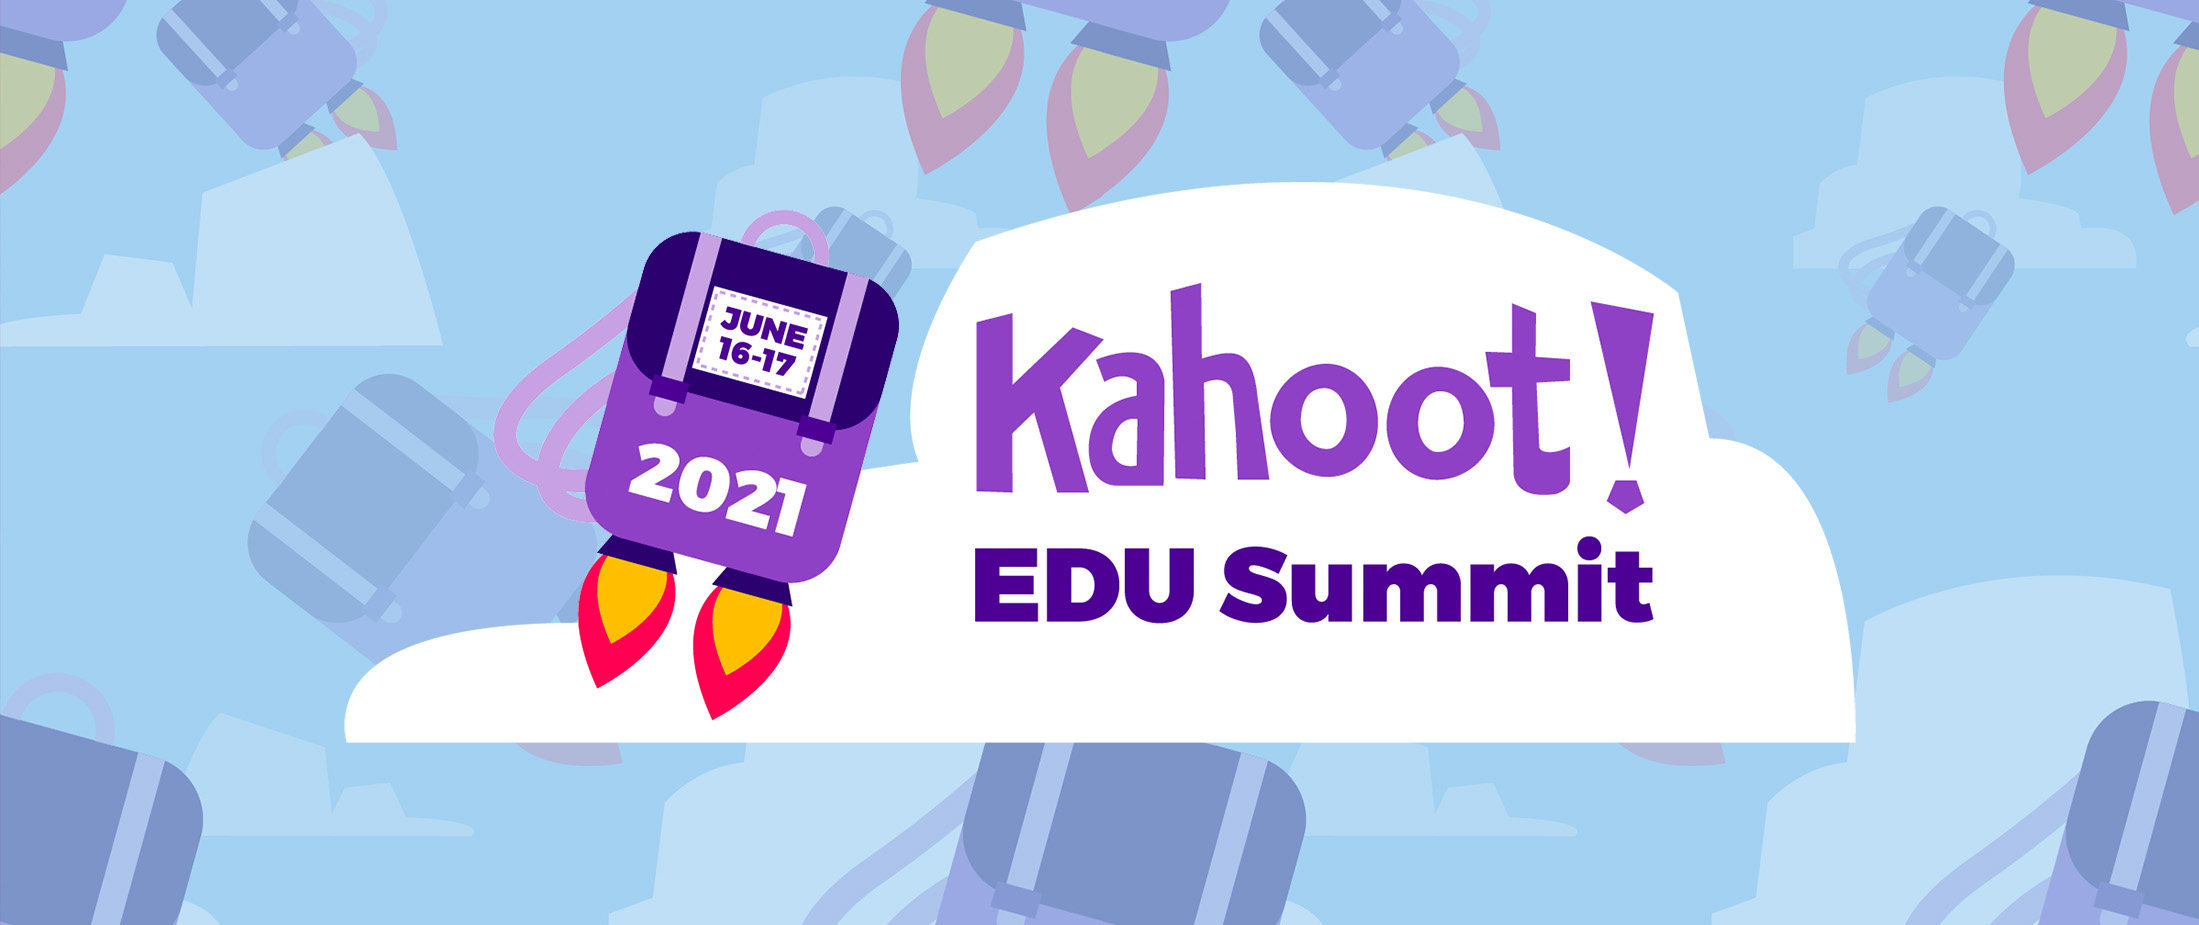 Join the 2021 Kahoot! EDU Summit